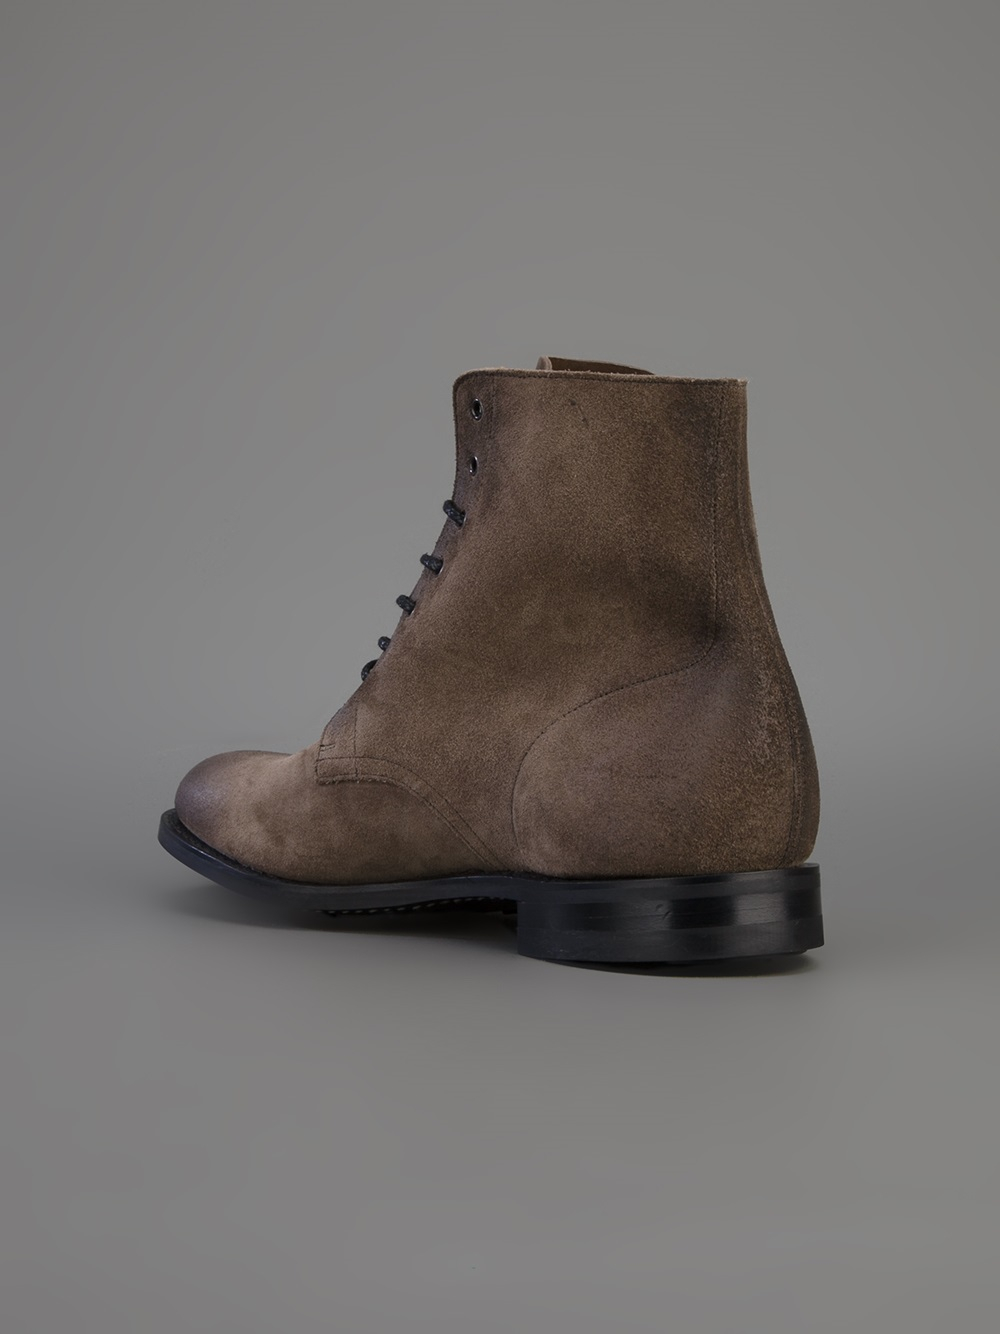 Church S Evington Boot In Brown For Men Lyst